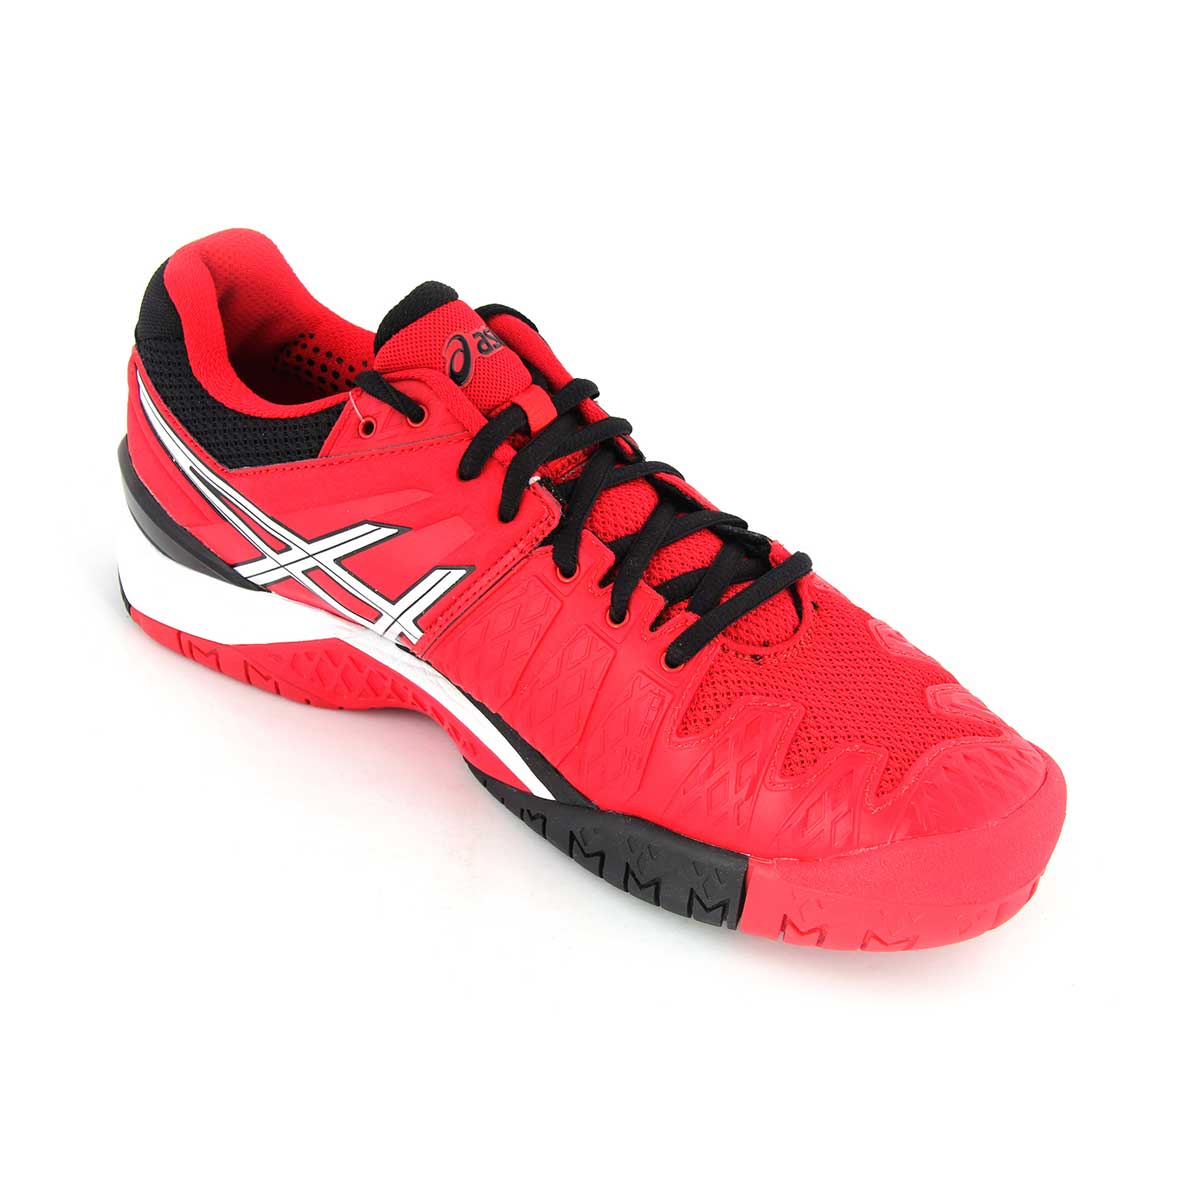 asics tennis shoes online india